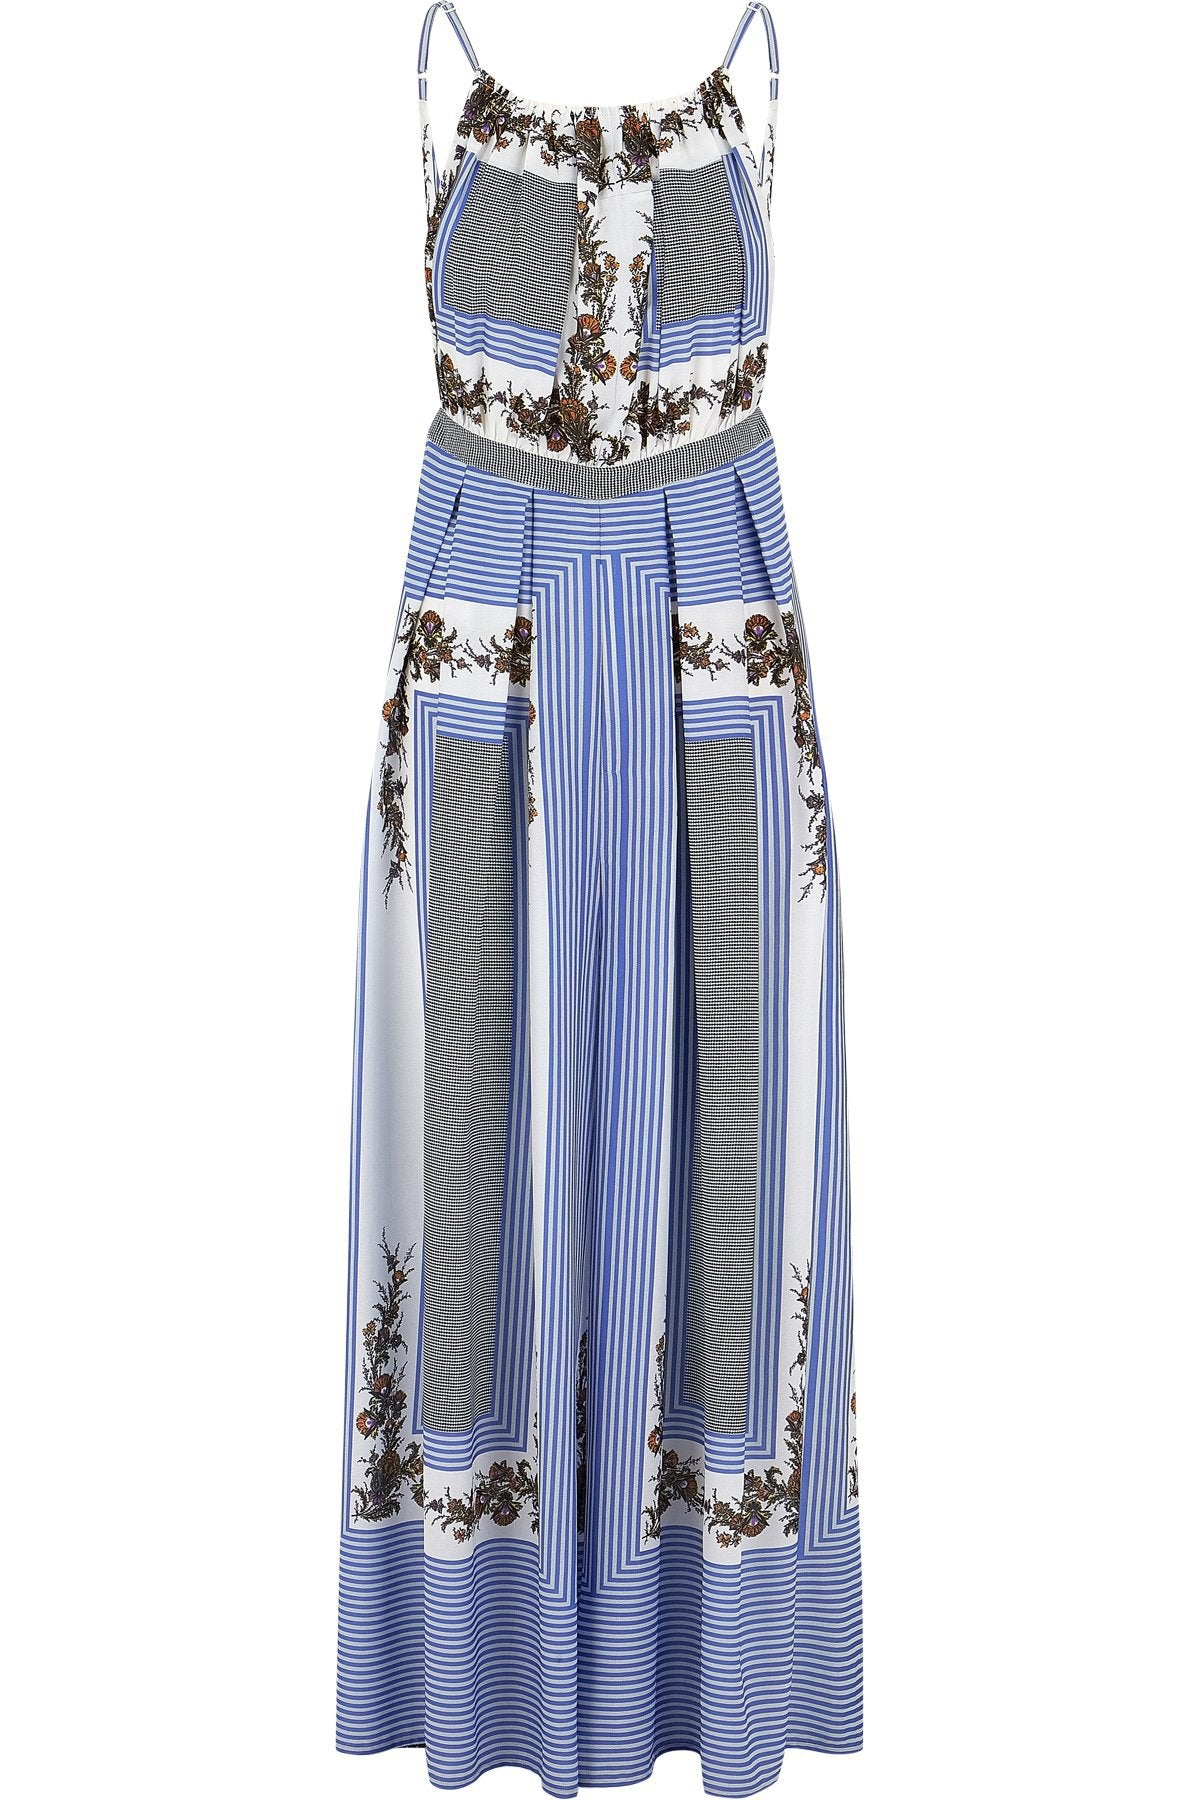 Halter Style Blue, Black and White Printed Wide Leg Jumpsuit